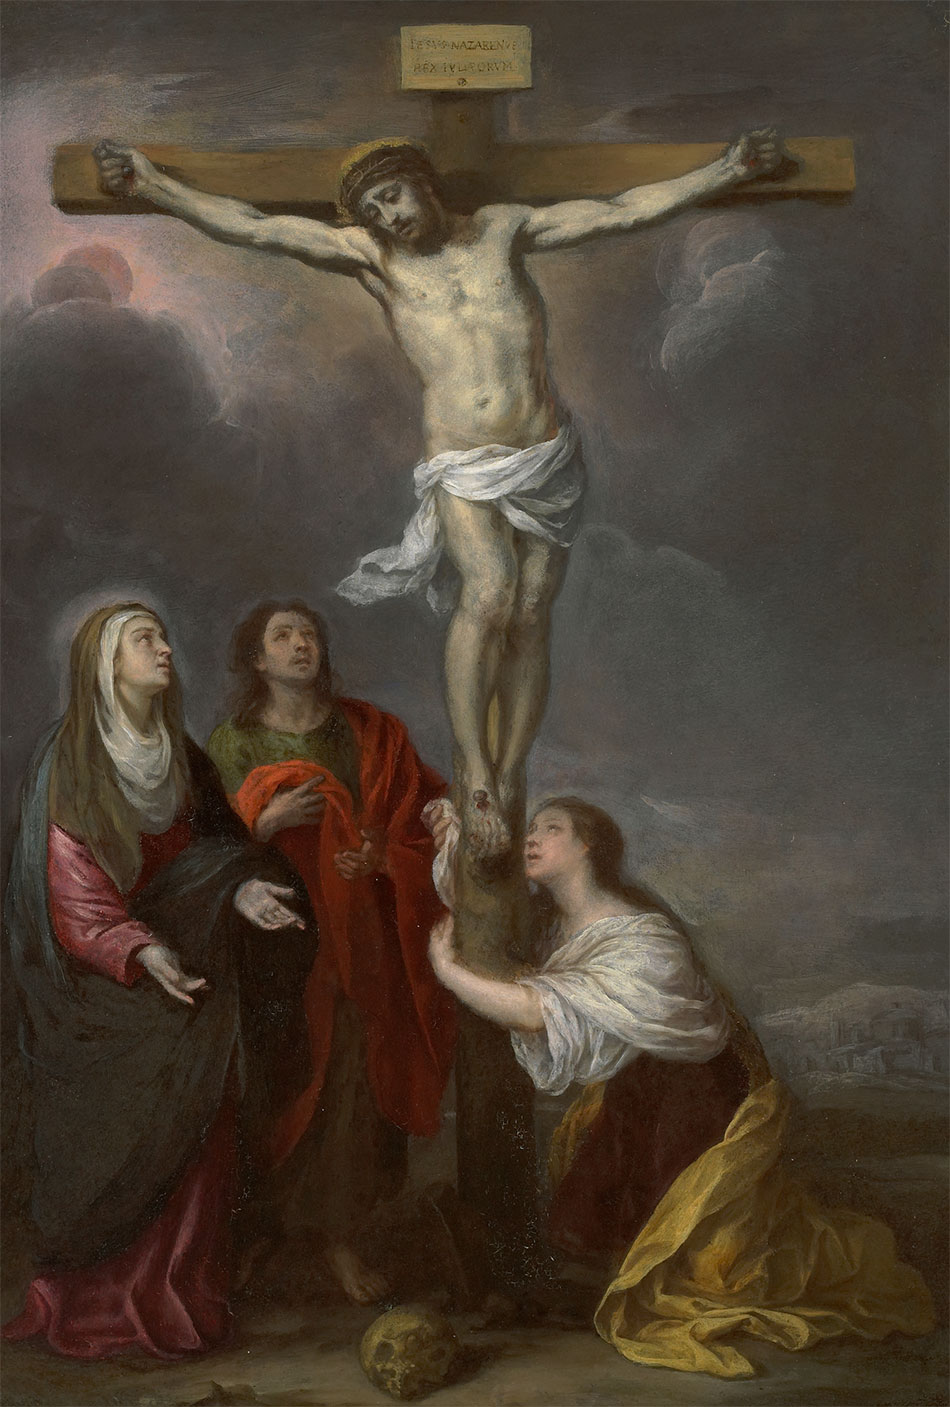 Bartolome_Esteban_Murillo_Christ-on-the-Chross-with-the-Virgin,-Mary-Magdalen,-and-Saint-John_950